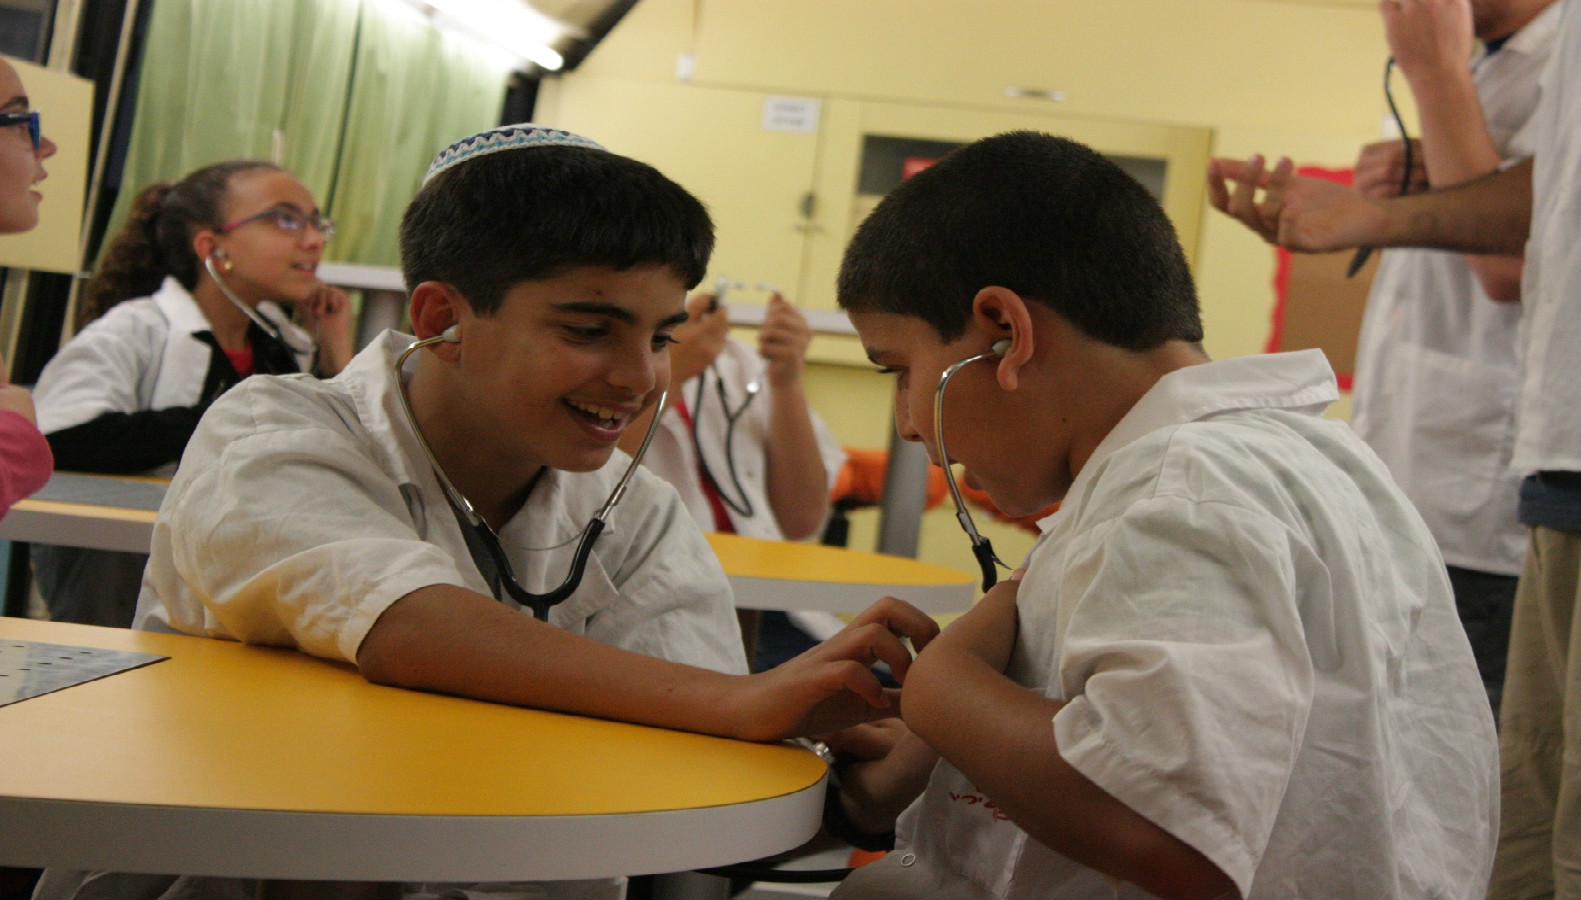 Participants in Ofanim's Young Doctors program learn about careers in healthcare. Photo courtesy of Ofanim